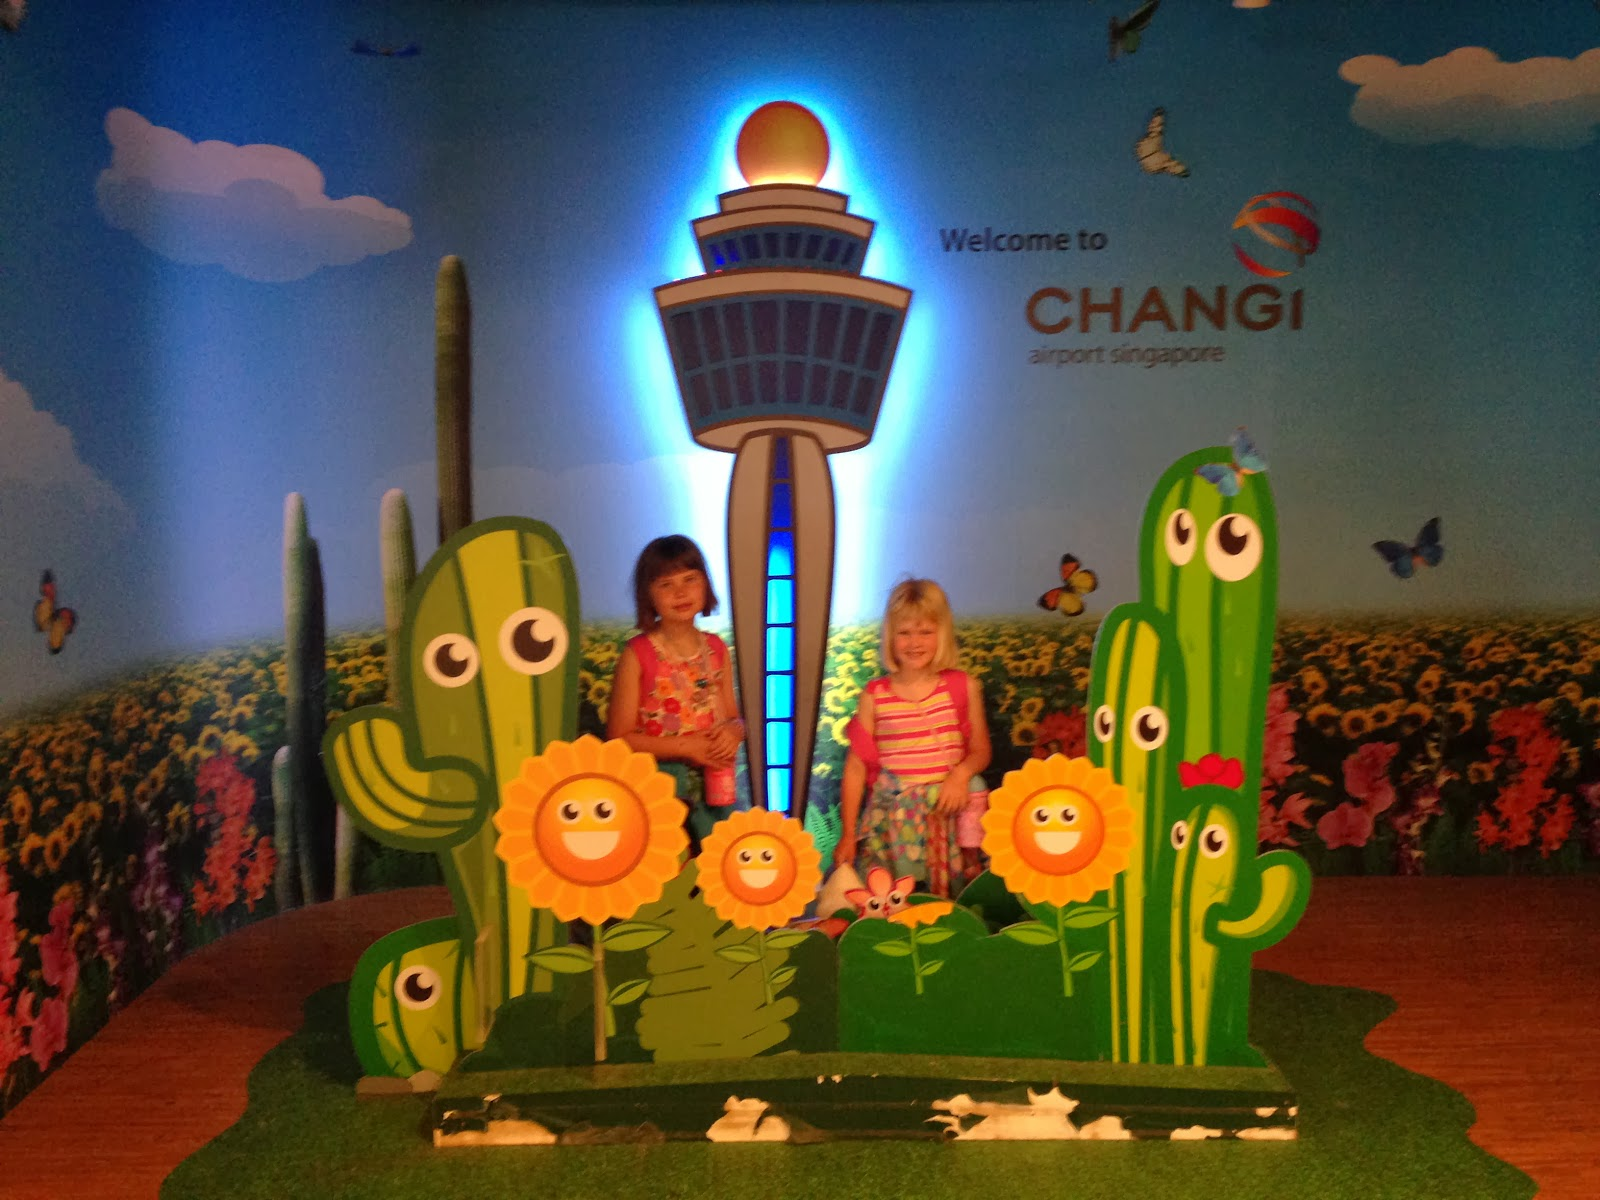 """<a href=""""http://vionm.com/"""">Thailand</a> <a href=""""http://vionm.com/things-to-do-in-bangkok-thailand/thailandhoneymoon-explore-the-beauty-of-koh-samui/"""">Beach</a>: Changi Airport, A Keen Trend To Pass Your Birthday. Seriously!!"""